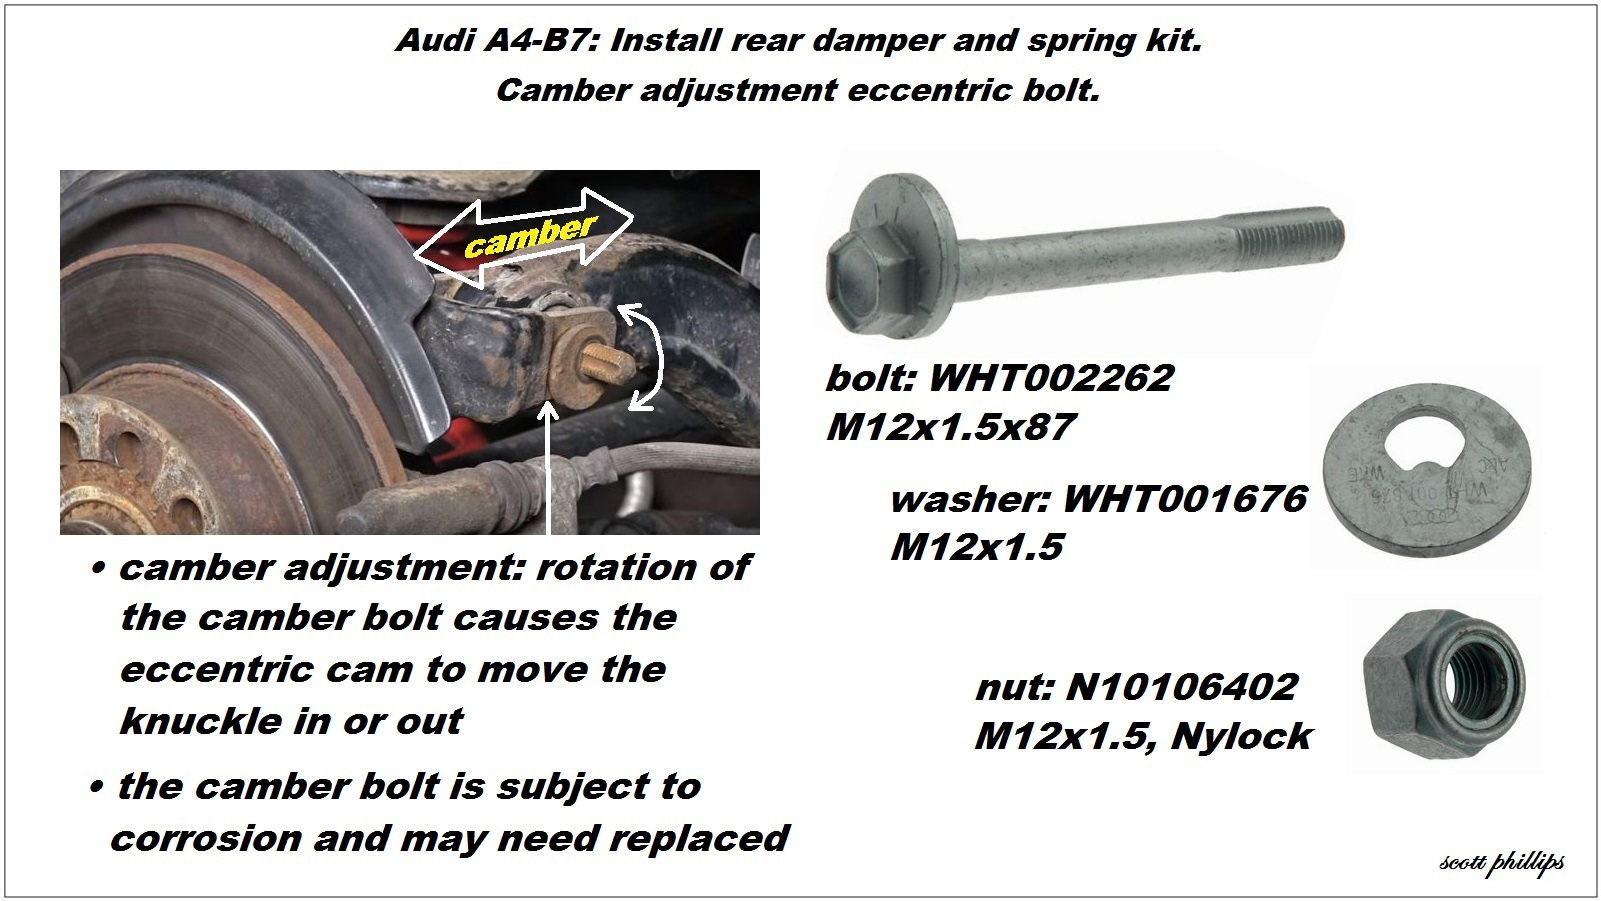 Audi A4 B7 Shock Reviews and How to Install Shock Absorber - Audiworld